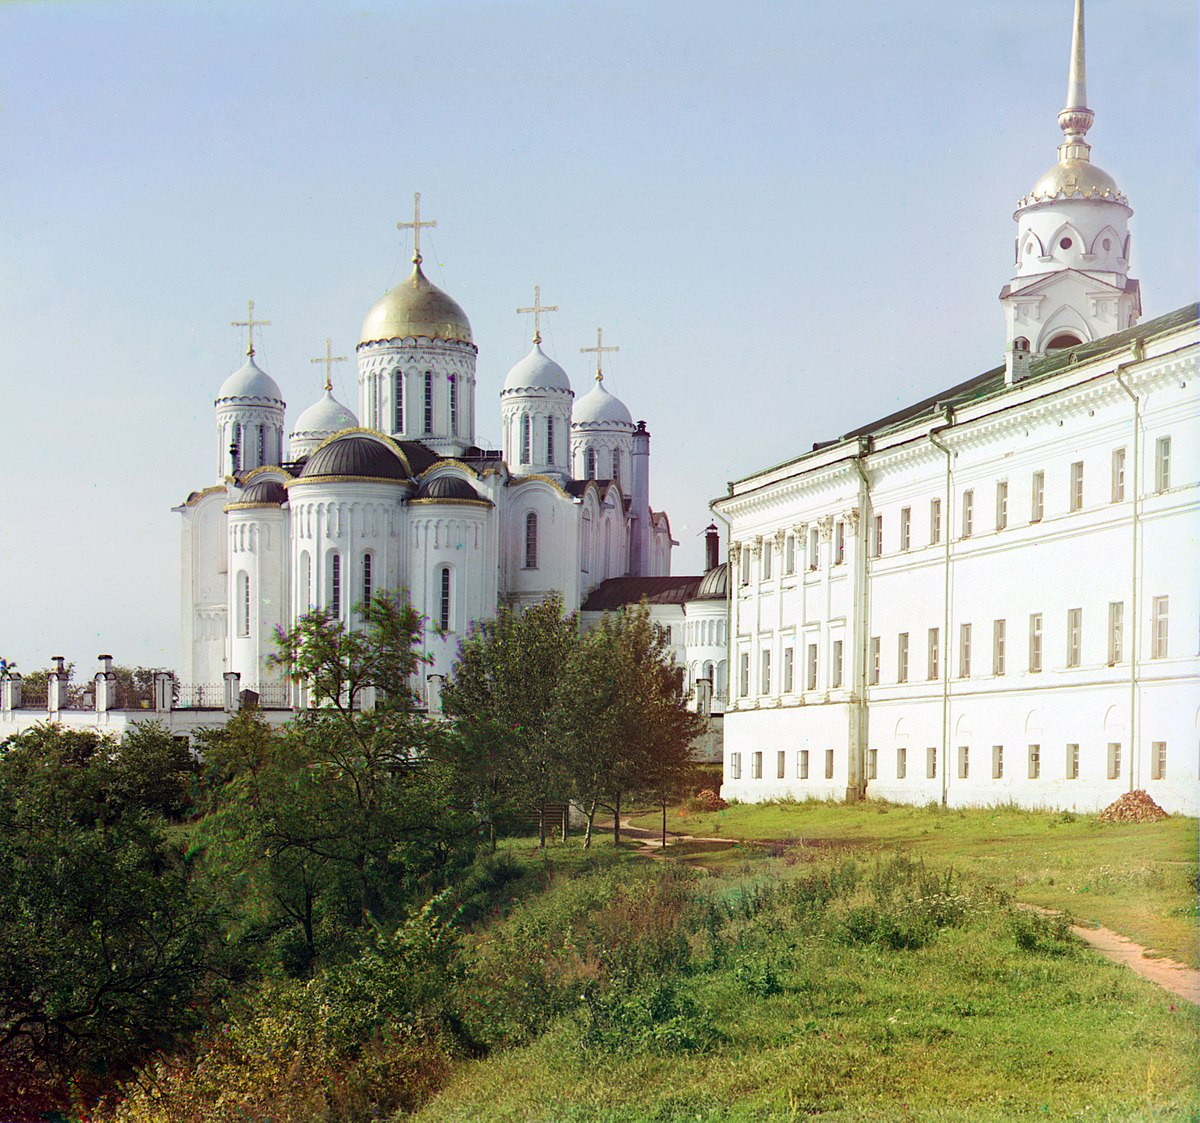 Vladimir-Suzdal principality: culture, architecture, chronicles, history 47